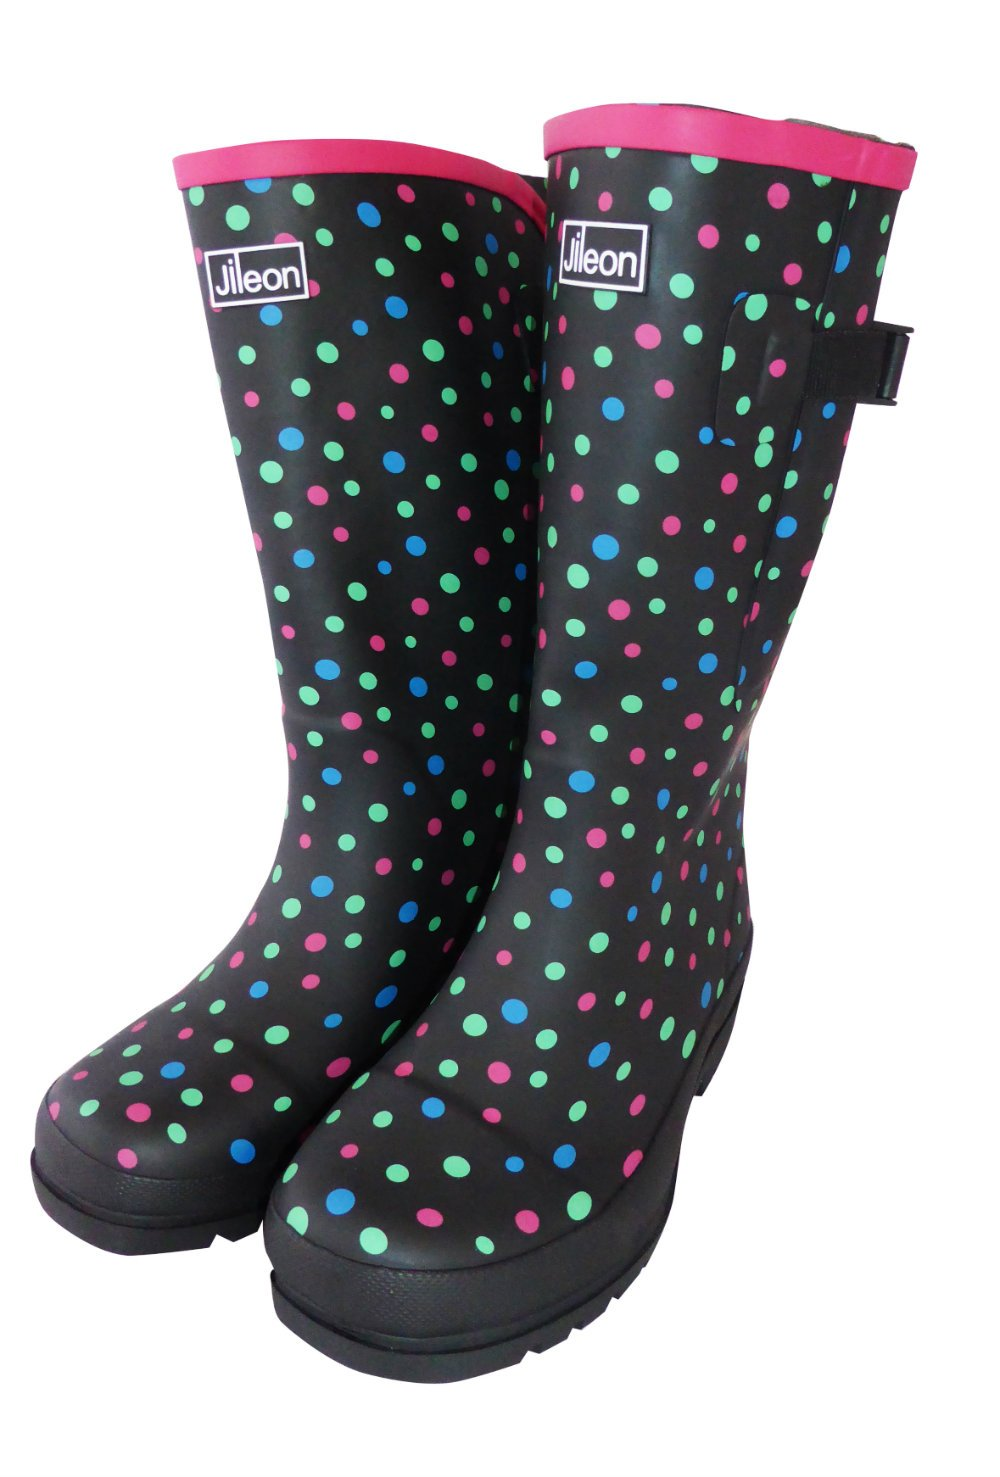 Jileon Extra Wide Calf Rubber Rain Boots with Rear Expansion -Widest Fit Boots in The US - up to 21 inch Calves- Wide in The Foot and Ankle -Durable Boots for All Weathers B074VCS6KM 6 E (US)|Coloured Spots